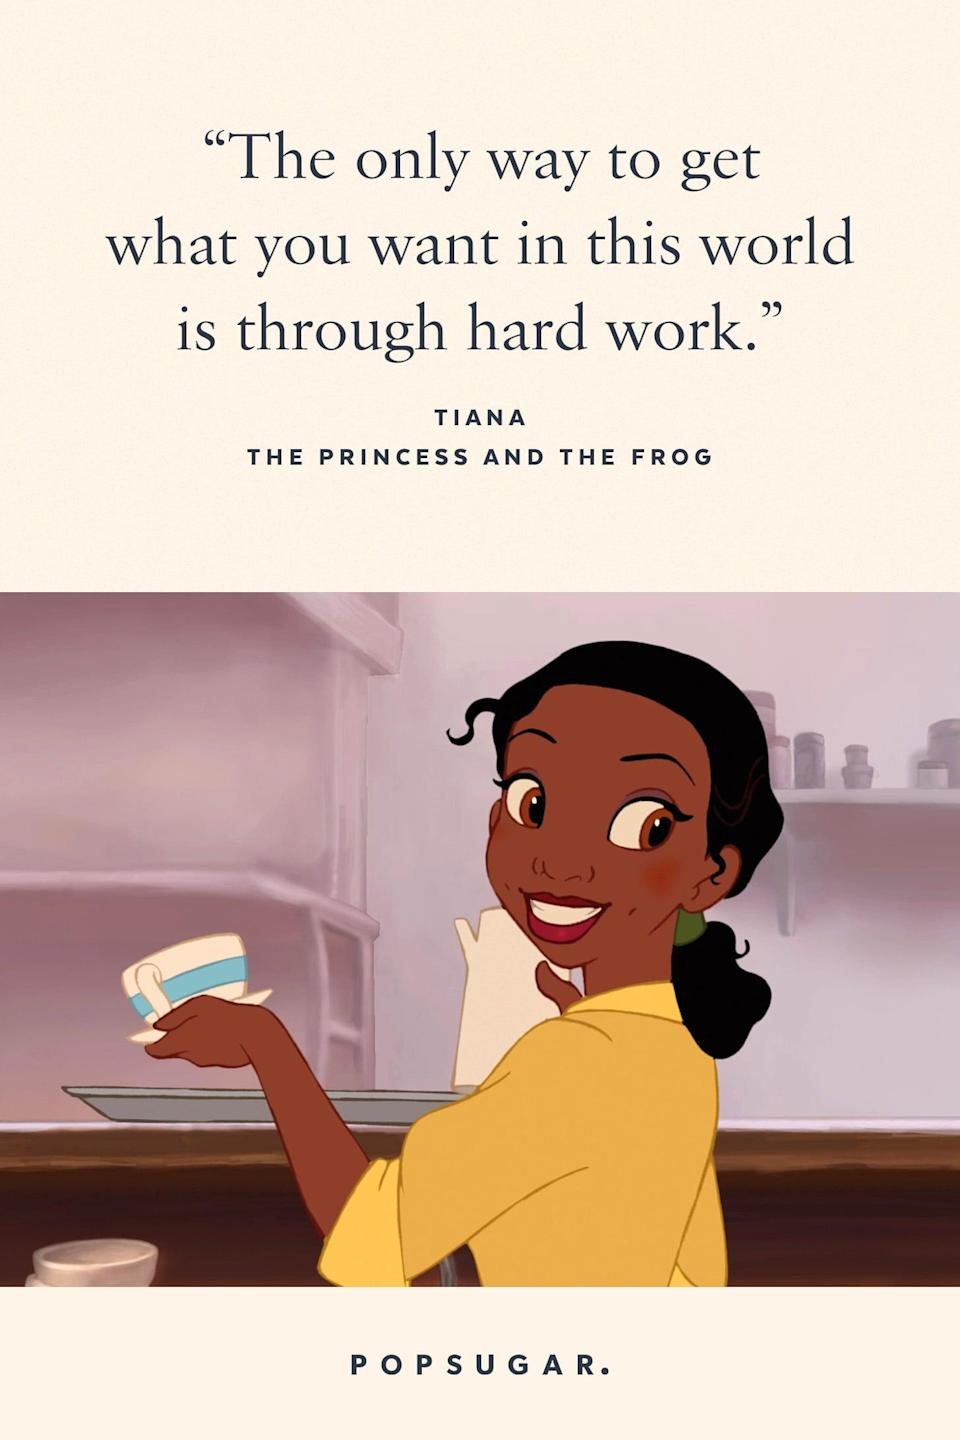 "<p>""The only way to get what you want in this world is through hard work."" - Tiana, <b>The Princess and the Frog</b></p>"